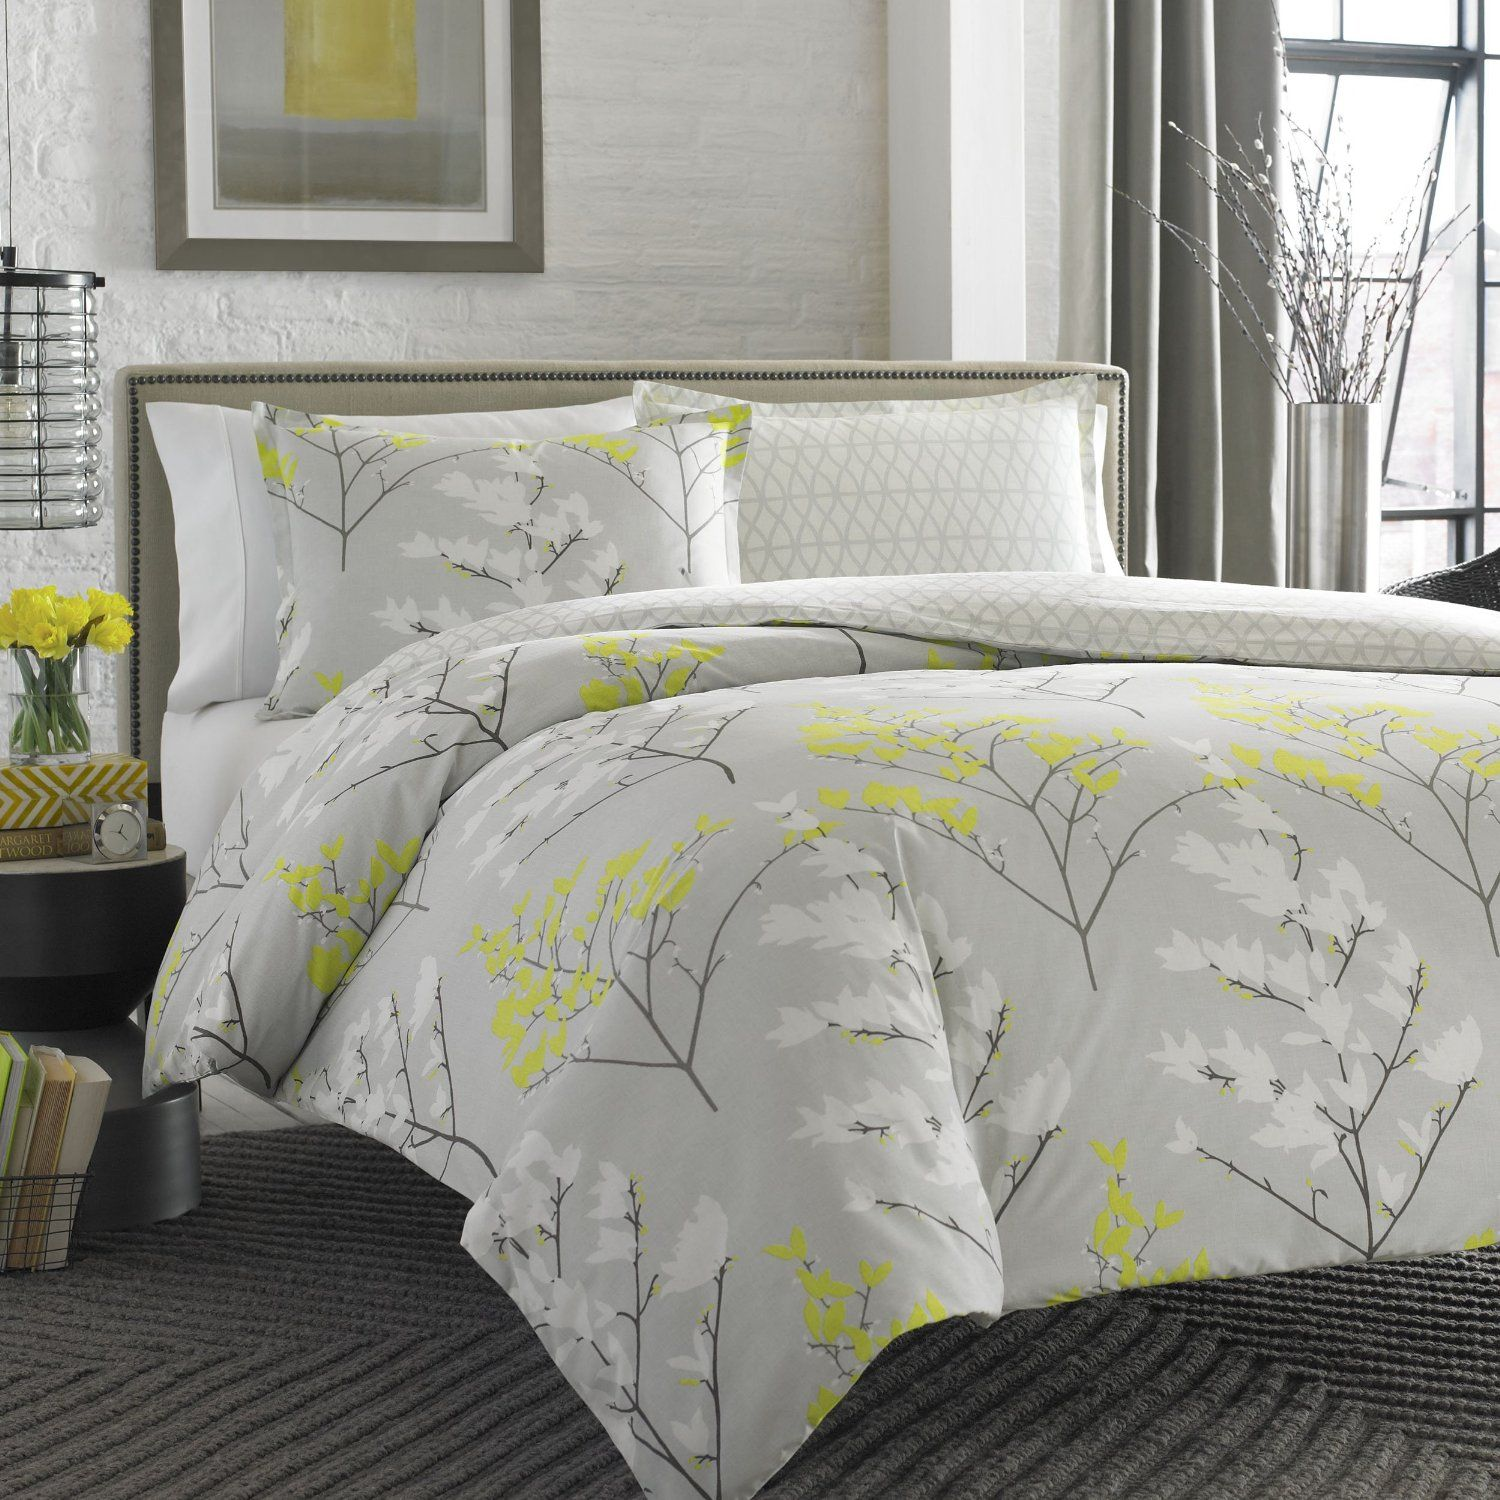 white for headboards rug ideas charming pc duvet piece bedding comforter blue queen beautiful decoration black emilie king full set tan doona sizes ashley size of tufted bedroom flower motif in discount sets today headboard free covers savannah shipping duvets cotton and wheat laura with cover